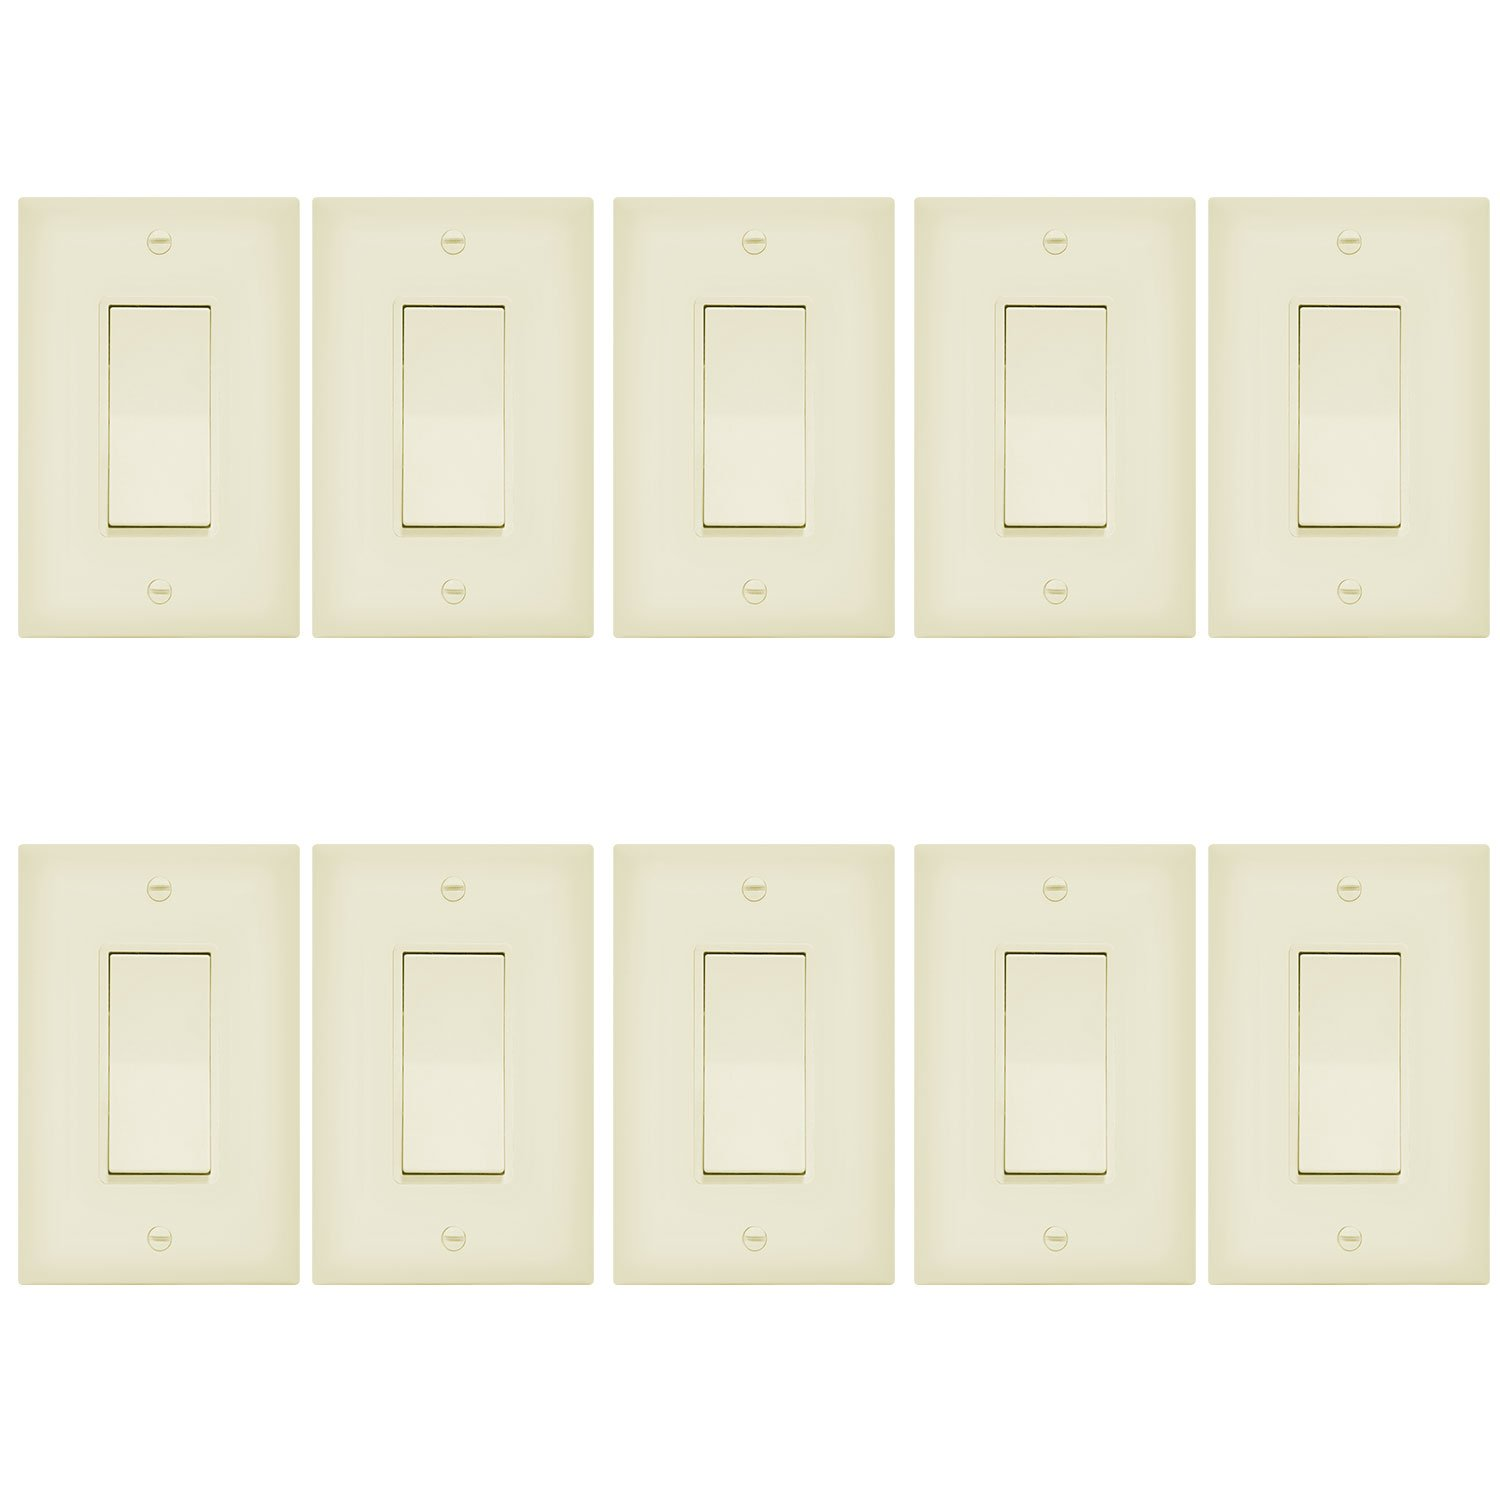 Enerlites 3-Way On/Off Paddle Light Switch with Covers 93150- | 15A, 120V/277VAC, Rocker, Single Pole, 3 Wire, Grounding Screw, Residential and Commercial Wall Switch, UL Listed | Ivory - 10 Pack